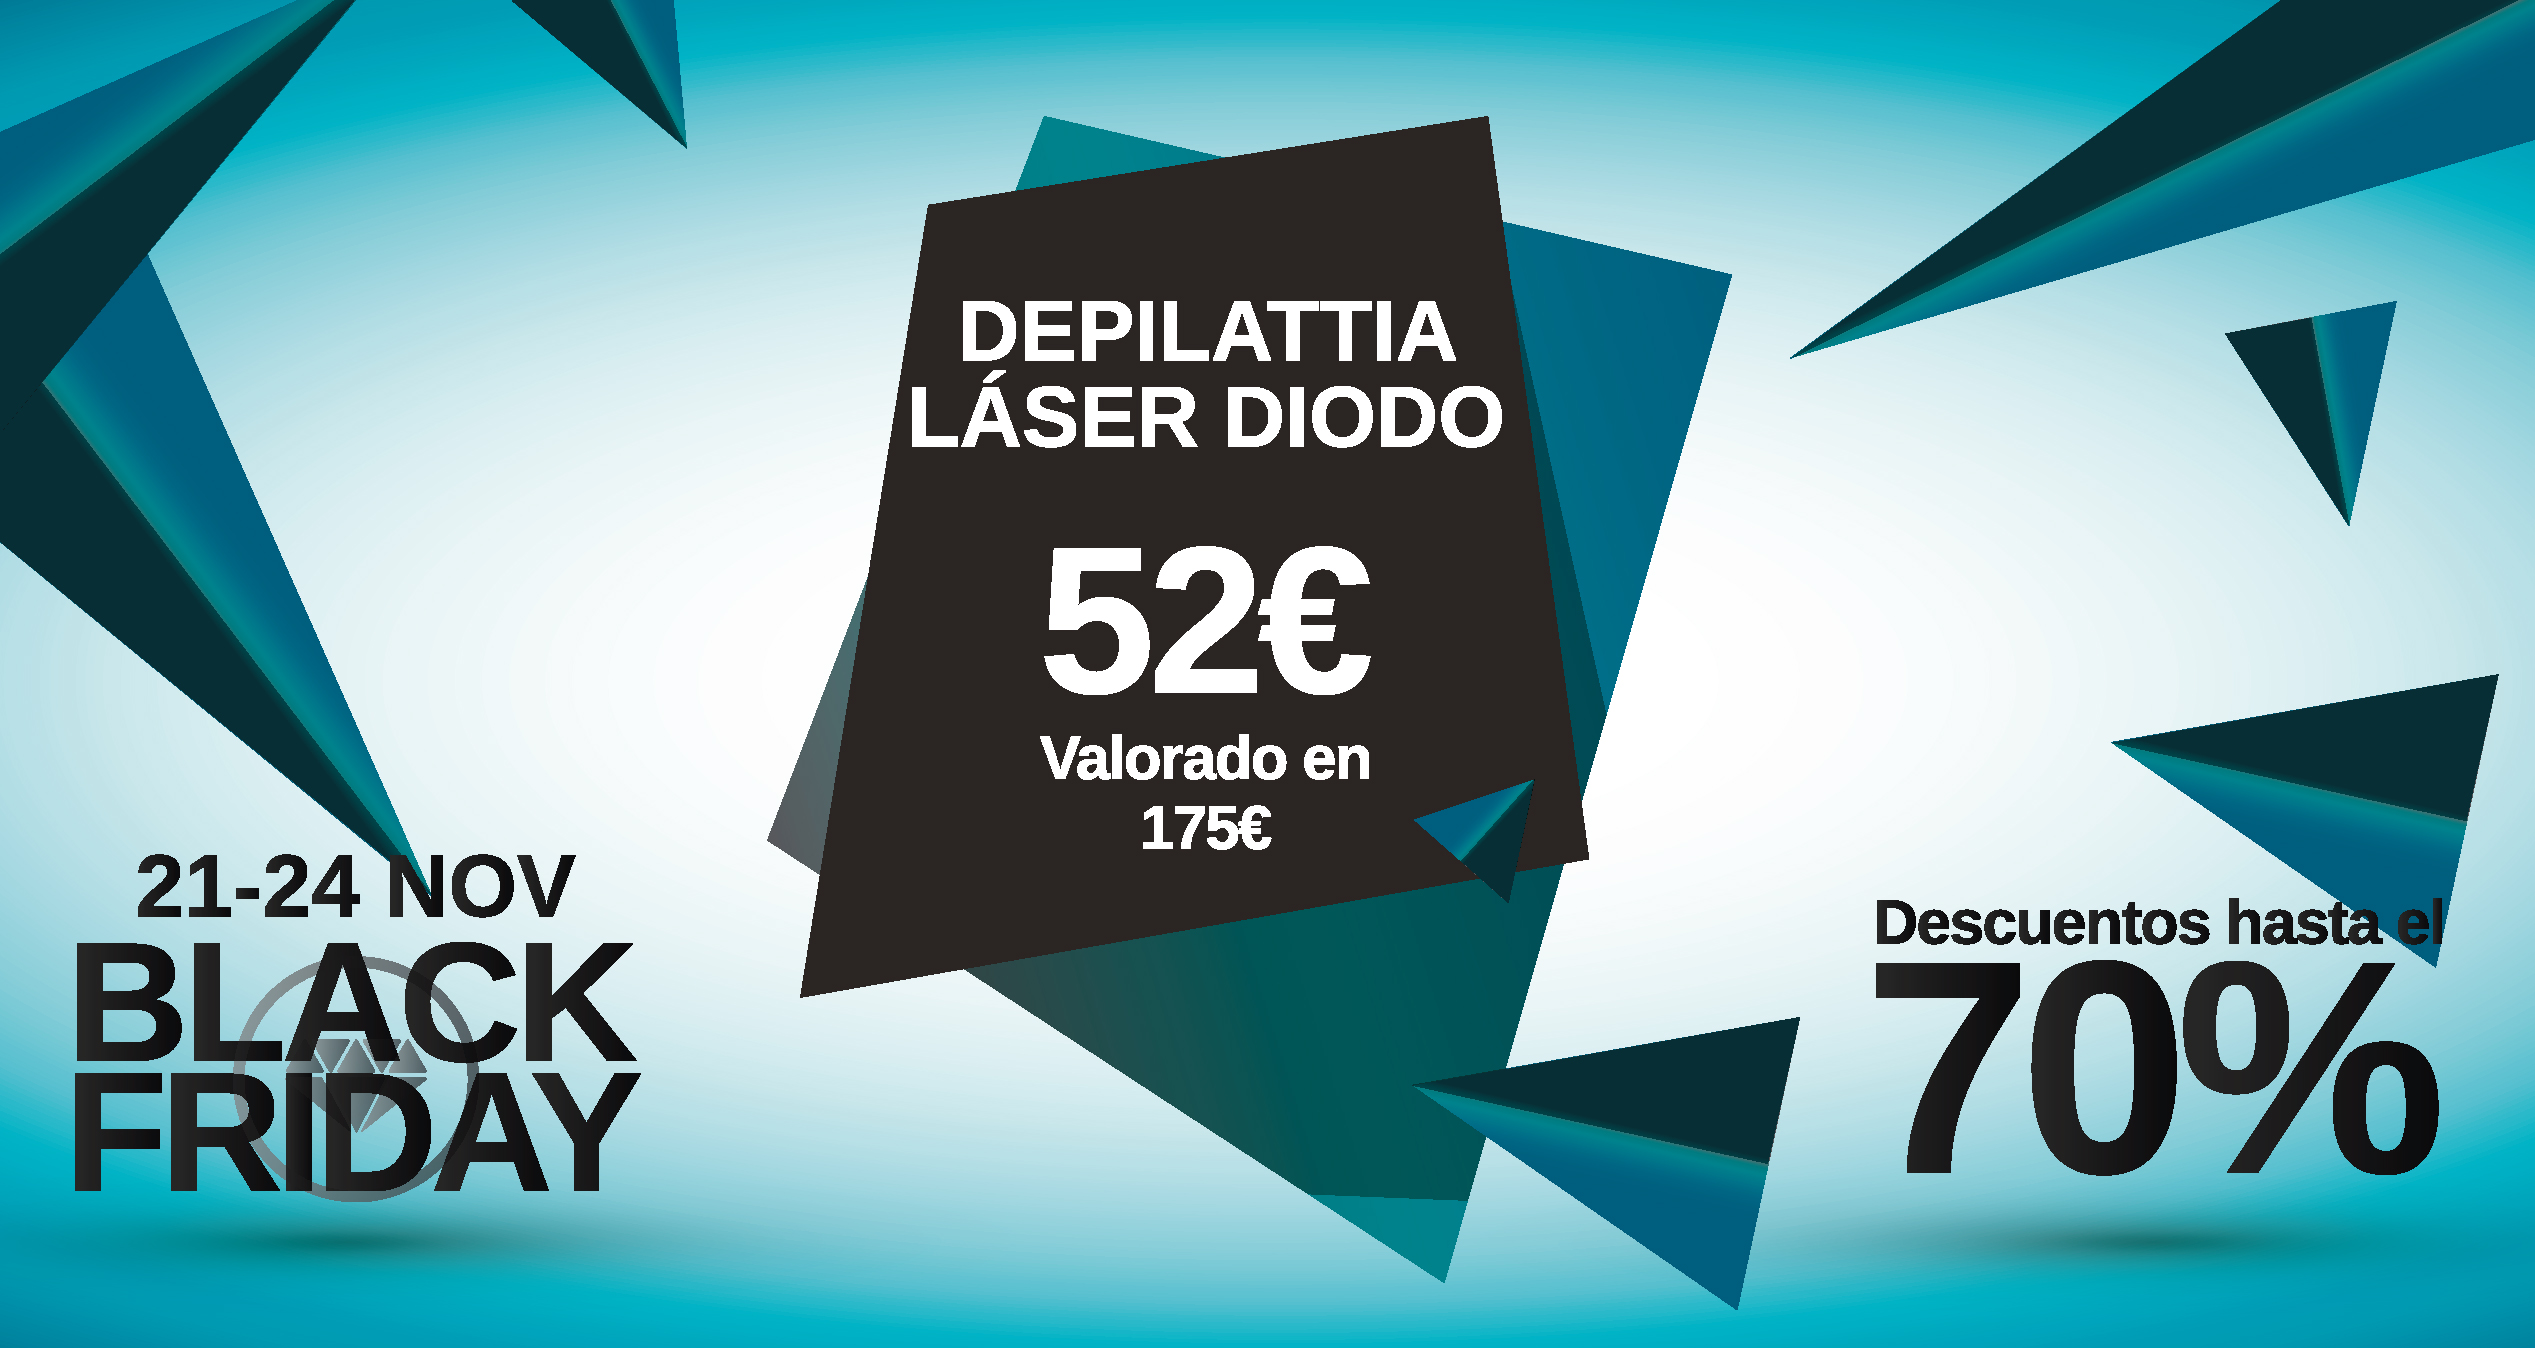 AAFF-Black-friday-depilattia-spa_laser-diodo-FACEBOOK